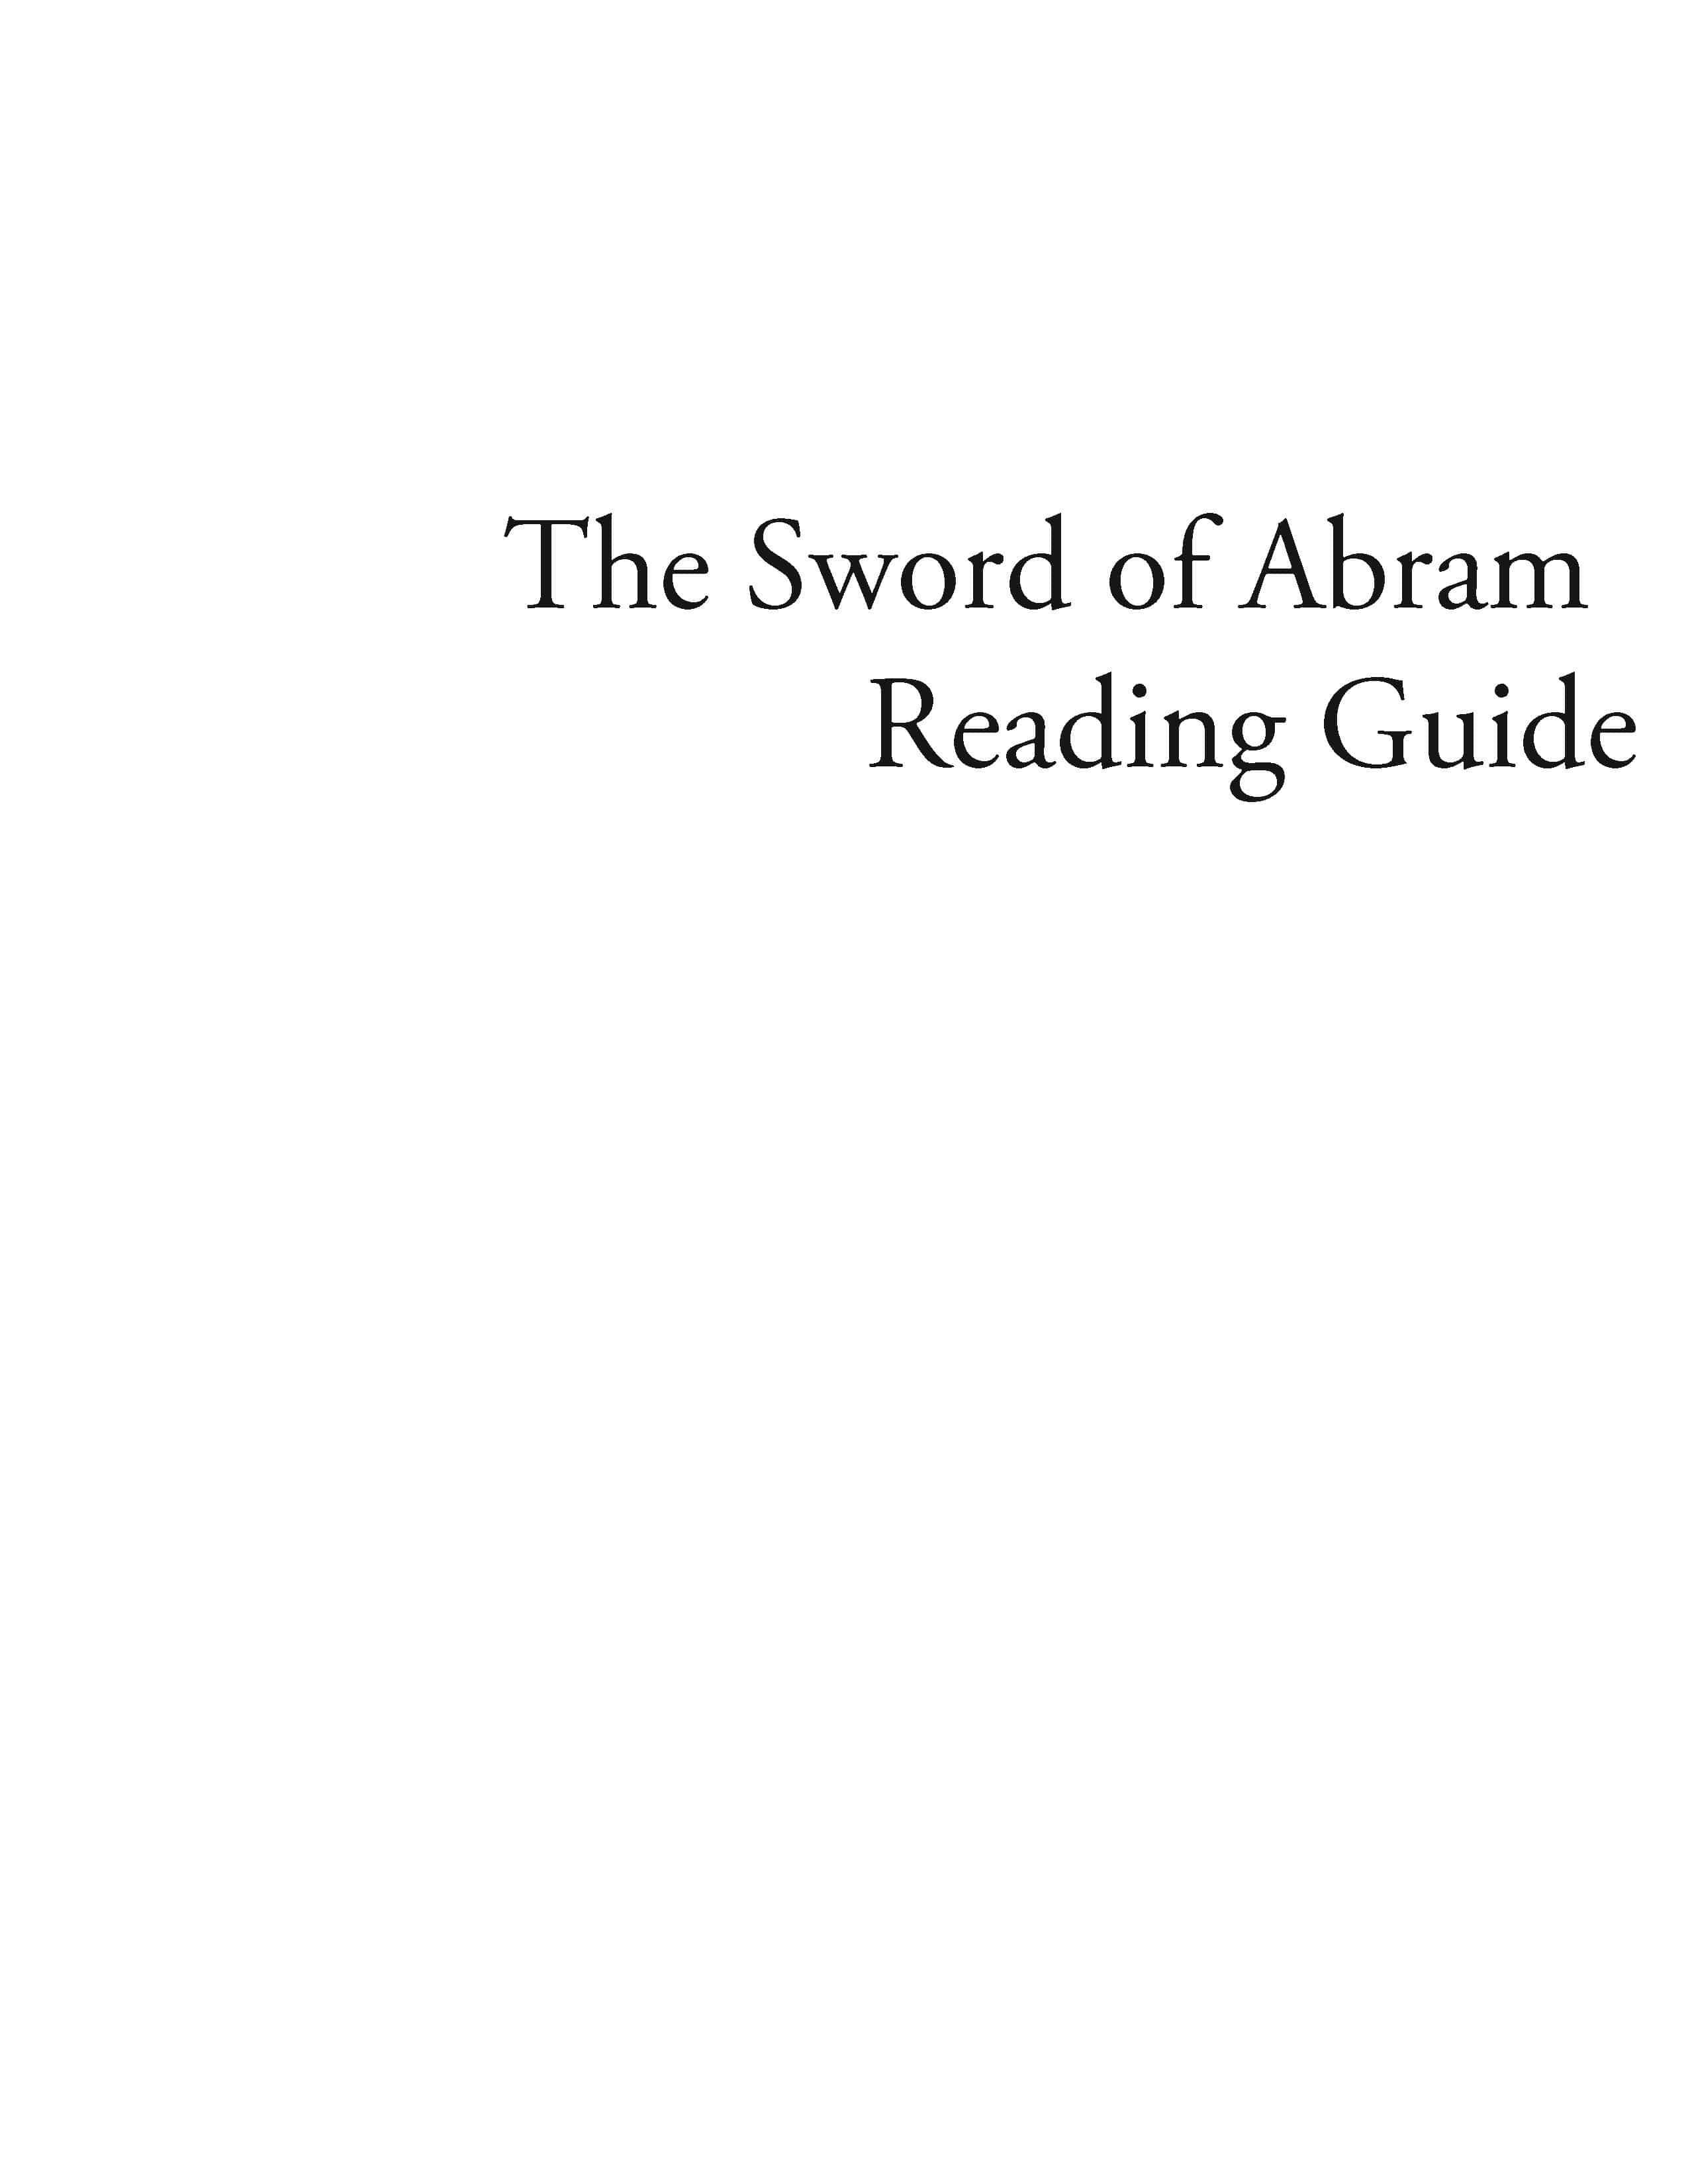 The Sword of Abram – Reading Guide (Download)